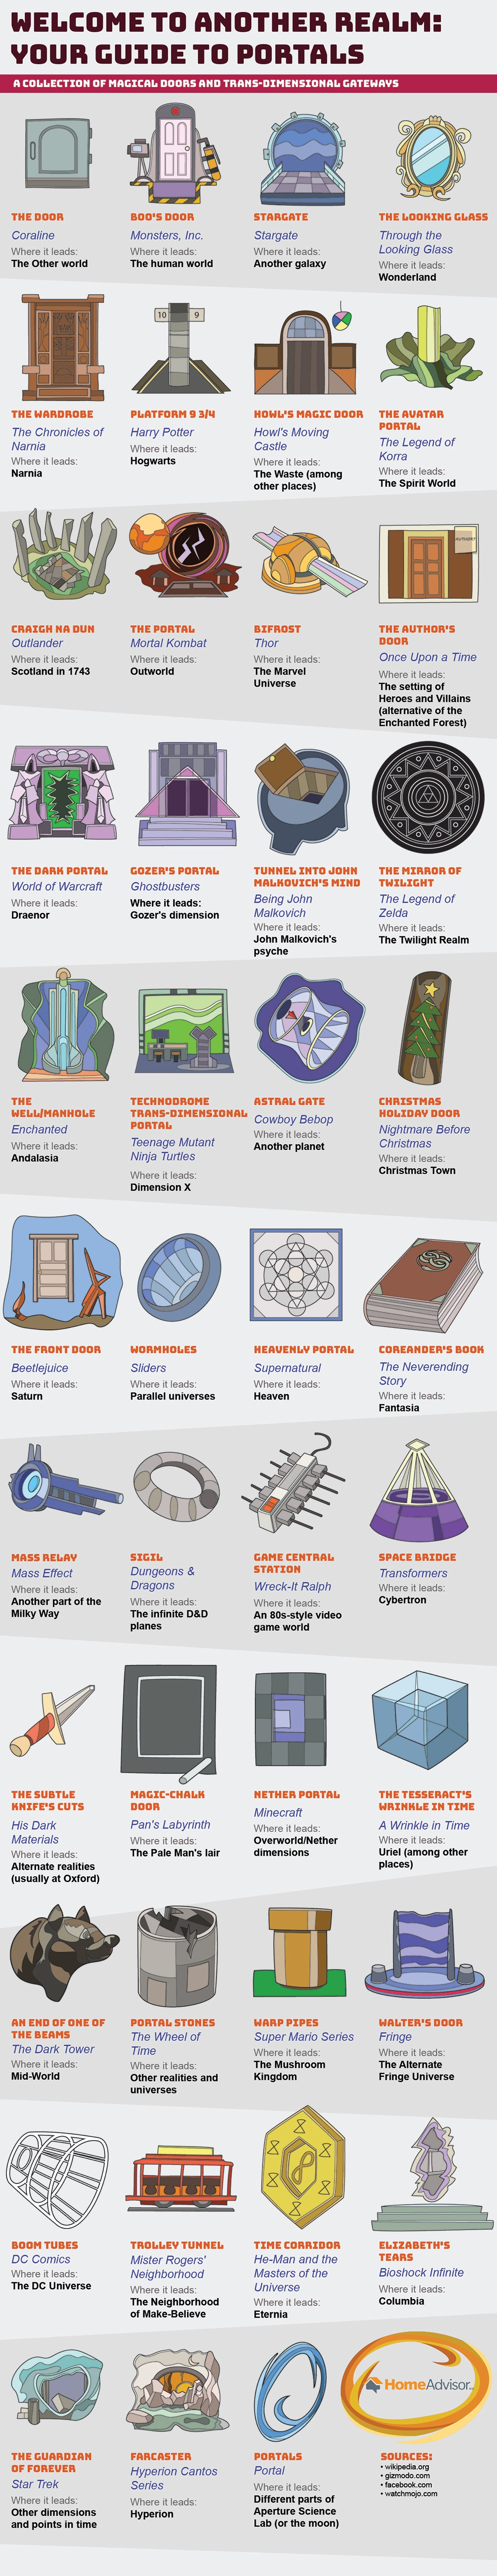 Your Guide to Portals